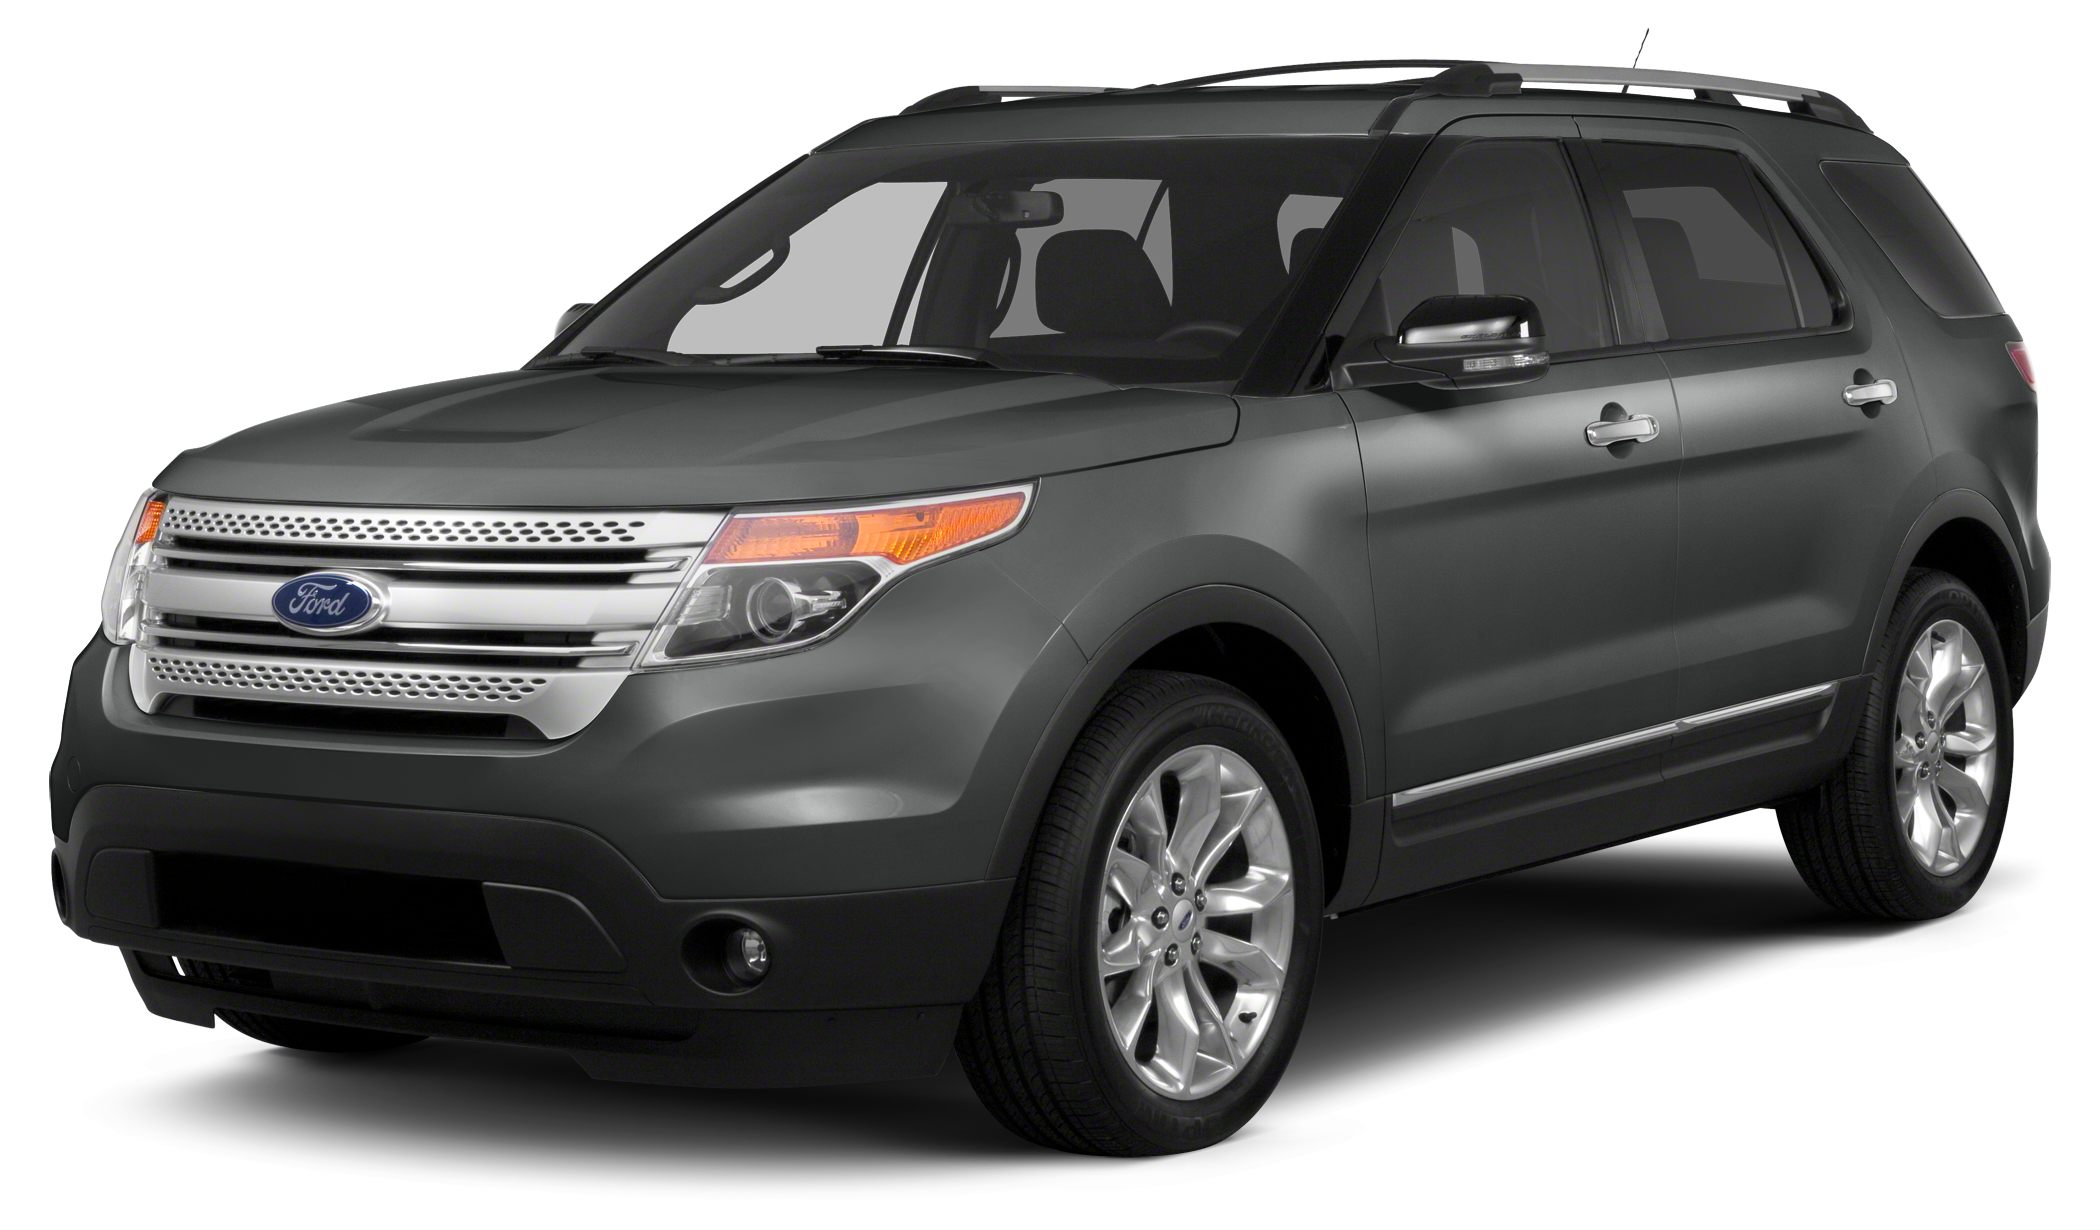 2014 Ford Explorer XLT PRICE DROP FROM 27976 3400 below NADA Retail Ford Certified Spotless